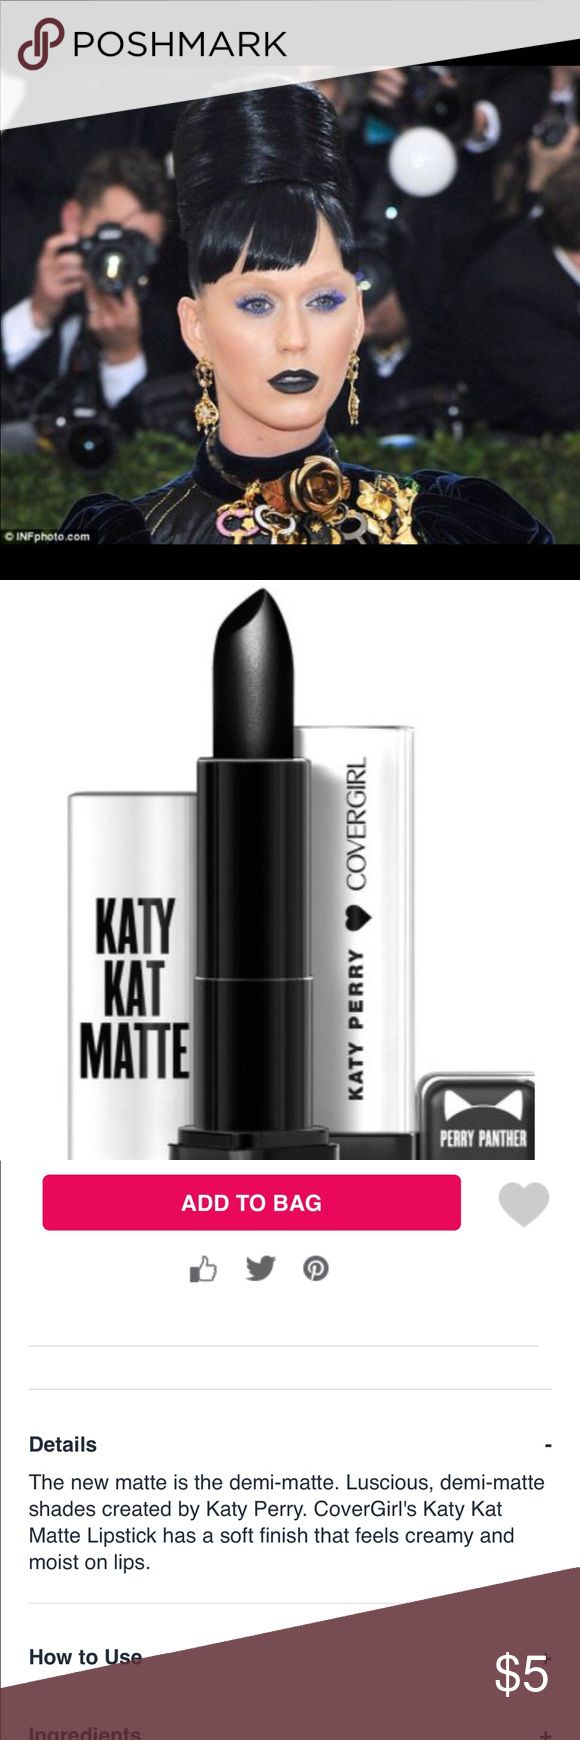 """Cover girl/Katy Perry Demi-matte lipstick This sleek black trendy lippy looks HOT! """"Perry panther"""", is a demi-matte ,(hint, it's not as drying, but still lasts☺️), these actually lasted for 6 hours w/primer, so that's impressive for a budget minded brand! I was pleased with the pigment & color layout, these guys are definitely stepping up their game! Perfect stocking stuffer for your fashionista! Christmas 🎄! NEW/UNUSED/FULL SIZE. ❌trades/other sites.   price FIRM unless bundling. NO…"""